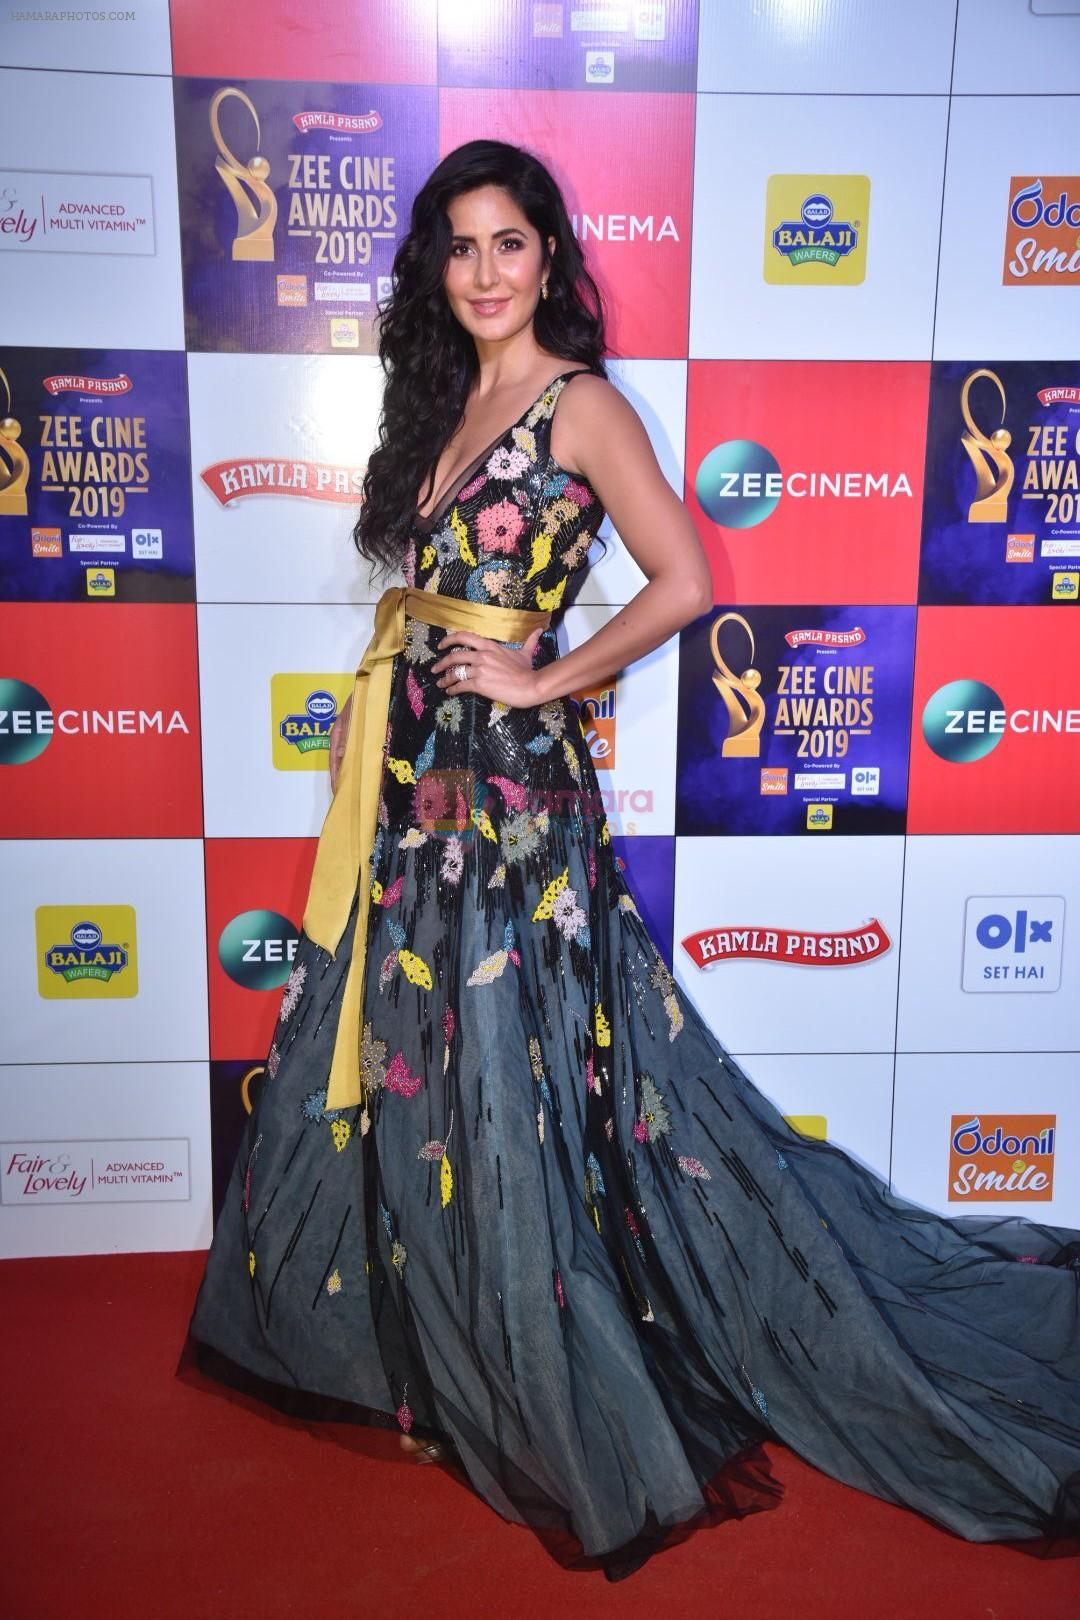 Katrina Kaif at Zee cine awards red carpet on 19th March 2019